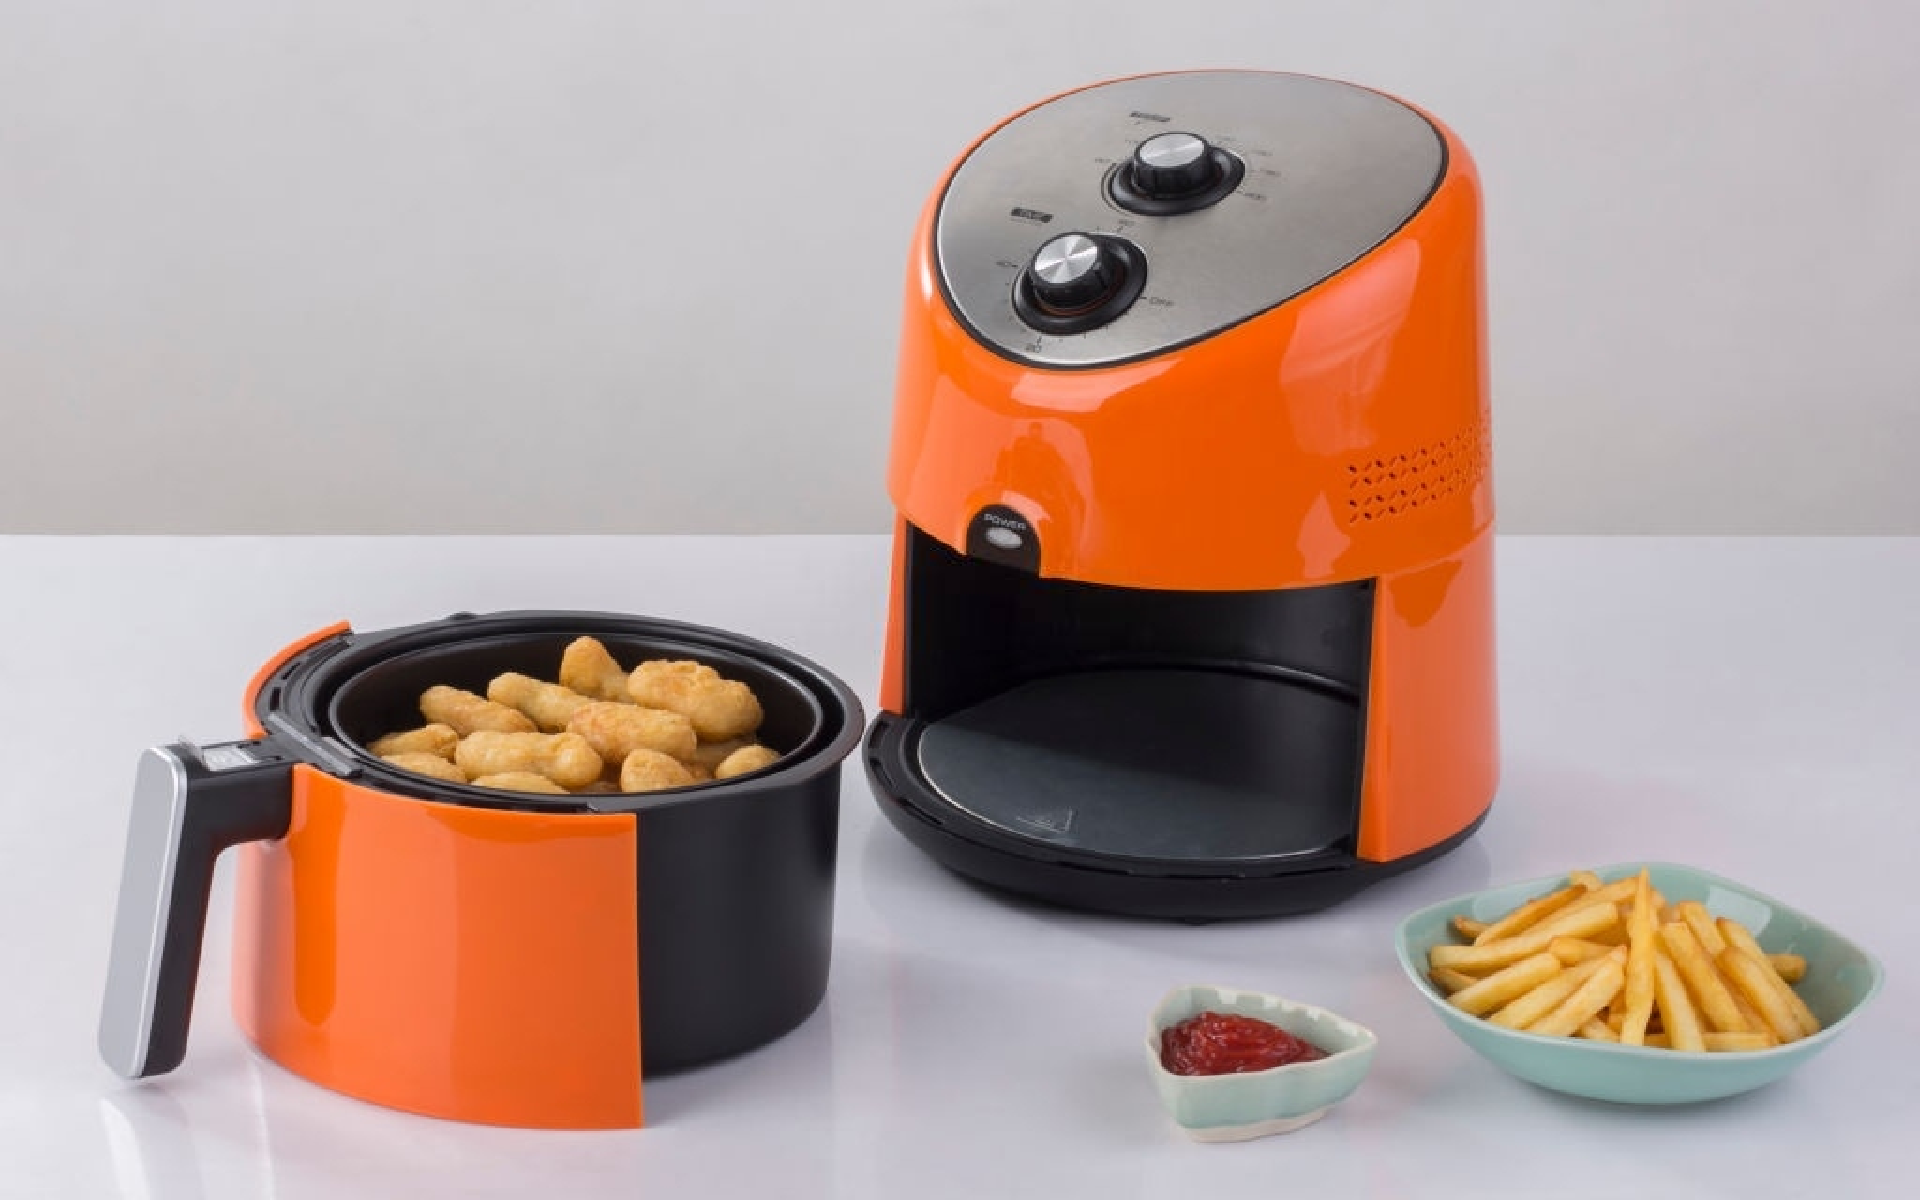 How To Choose The Best Fryer Without Oil